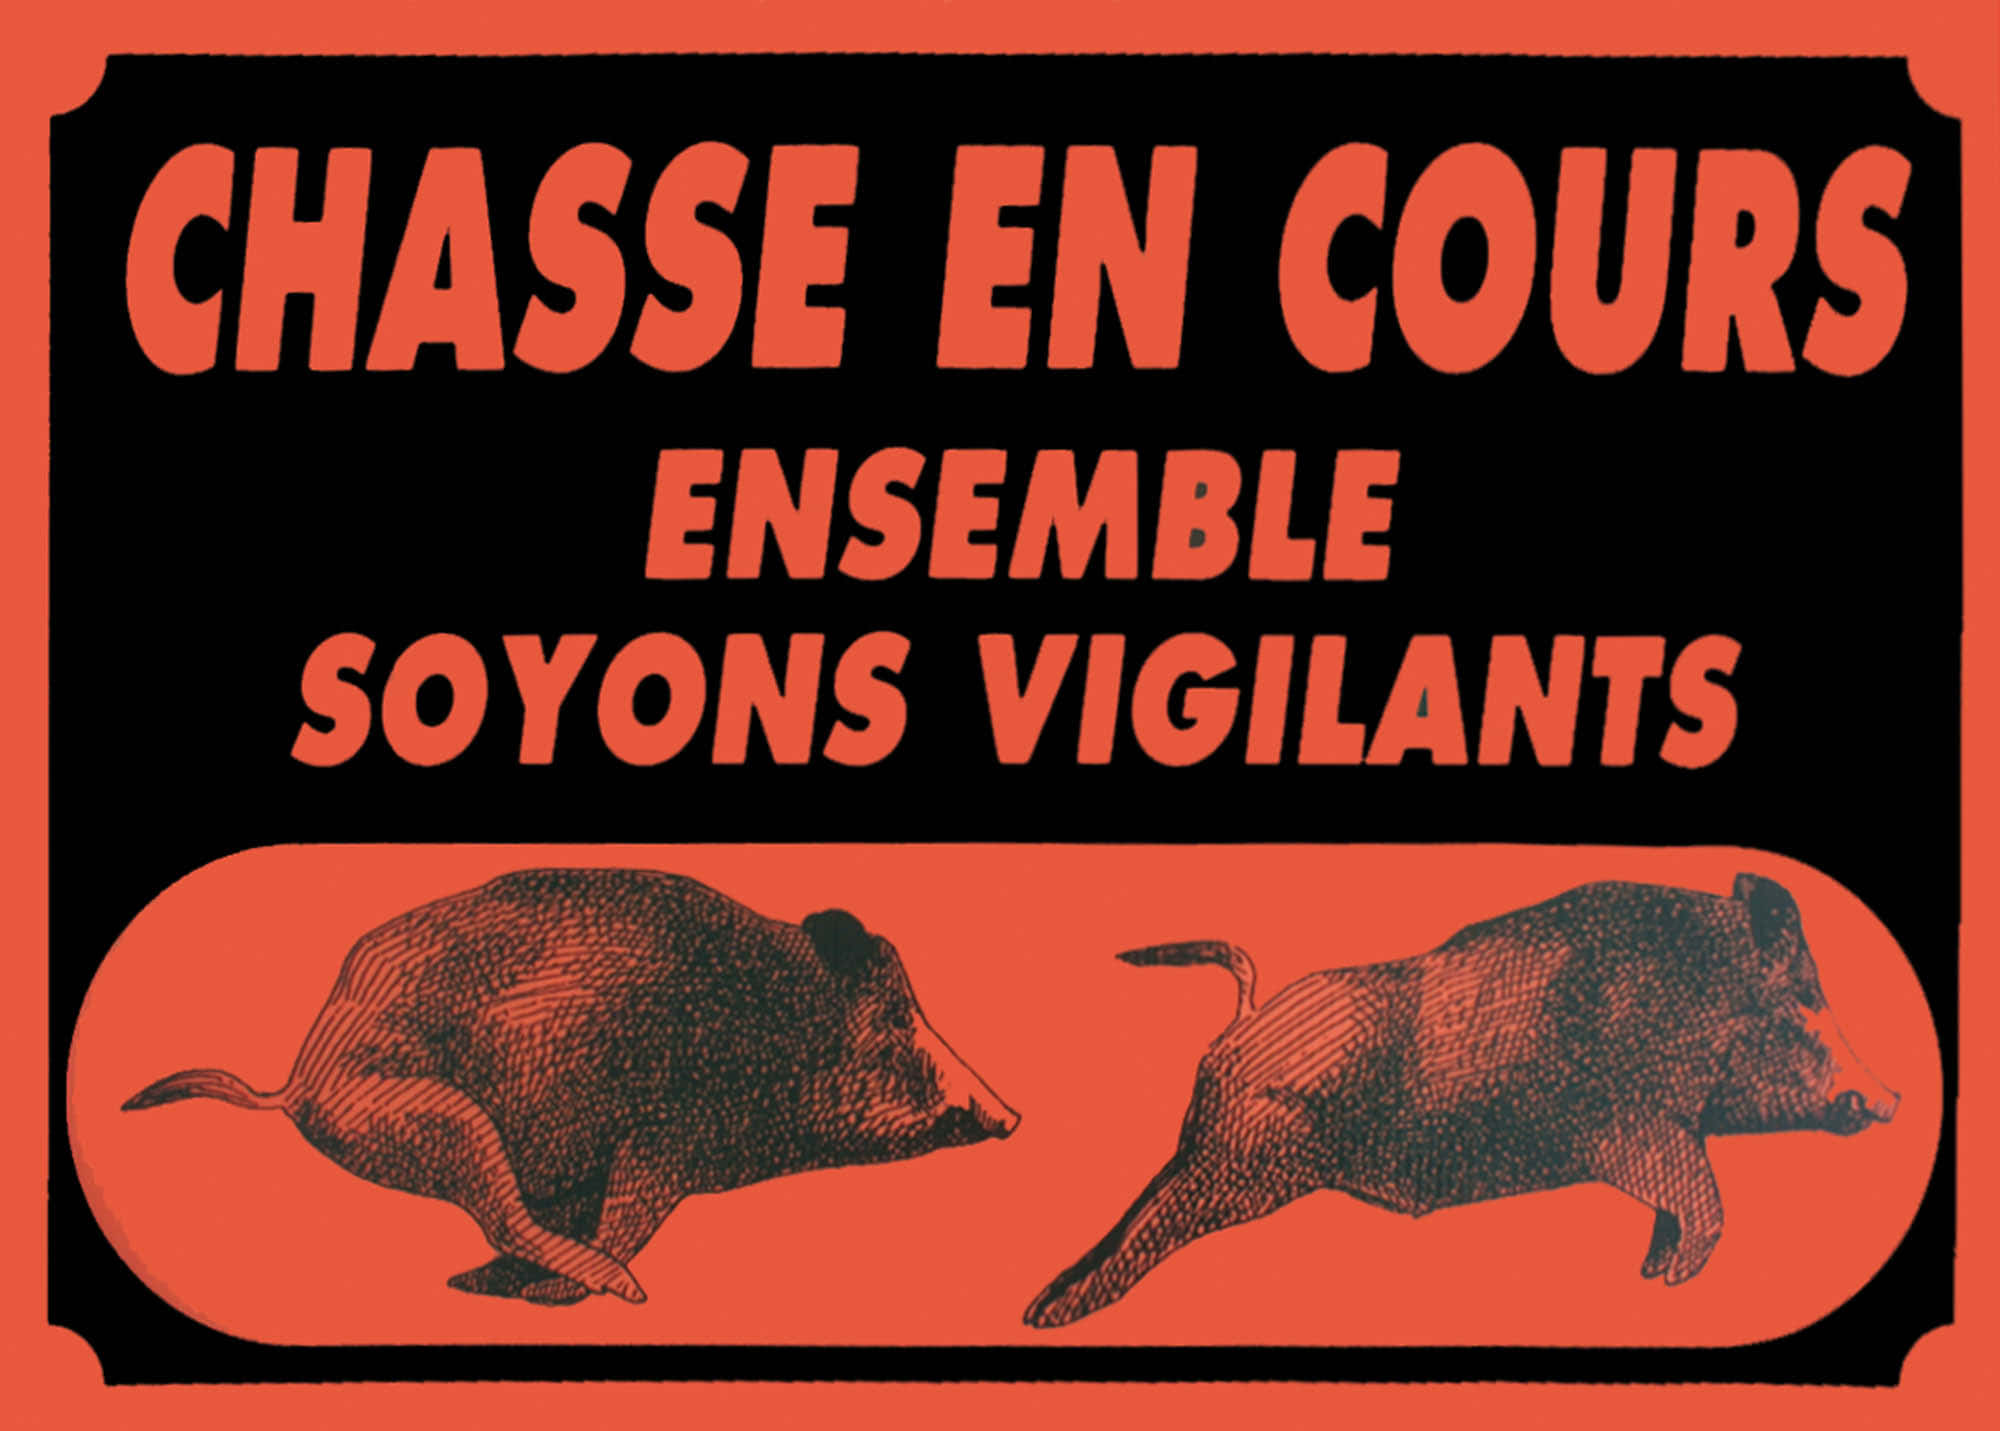 A50810-ATTENTION CHASSE EN COURS - A50810